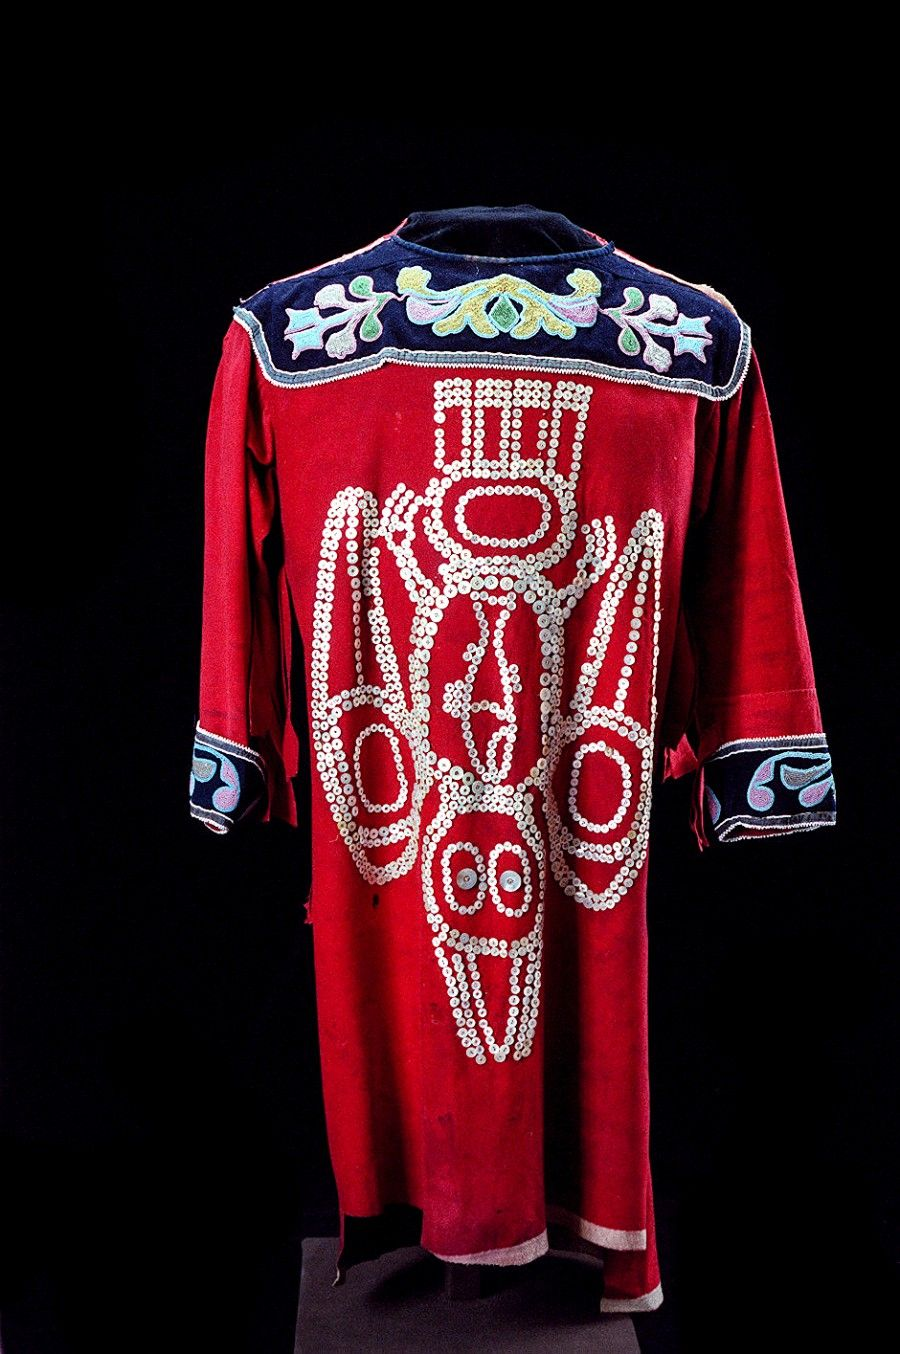 """Tahltan """"Diving Raven"""" button tunic. Date unknown. Wool cotton, silk, glass beads, shell buttons. Royal BC Museum. @briarpatched"""